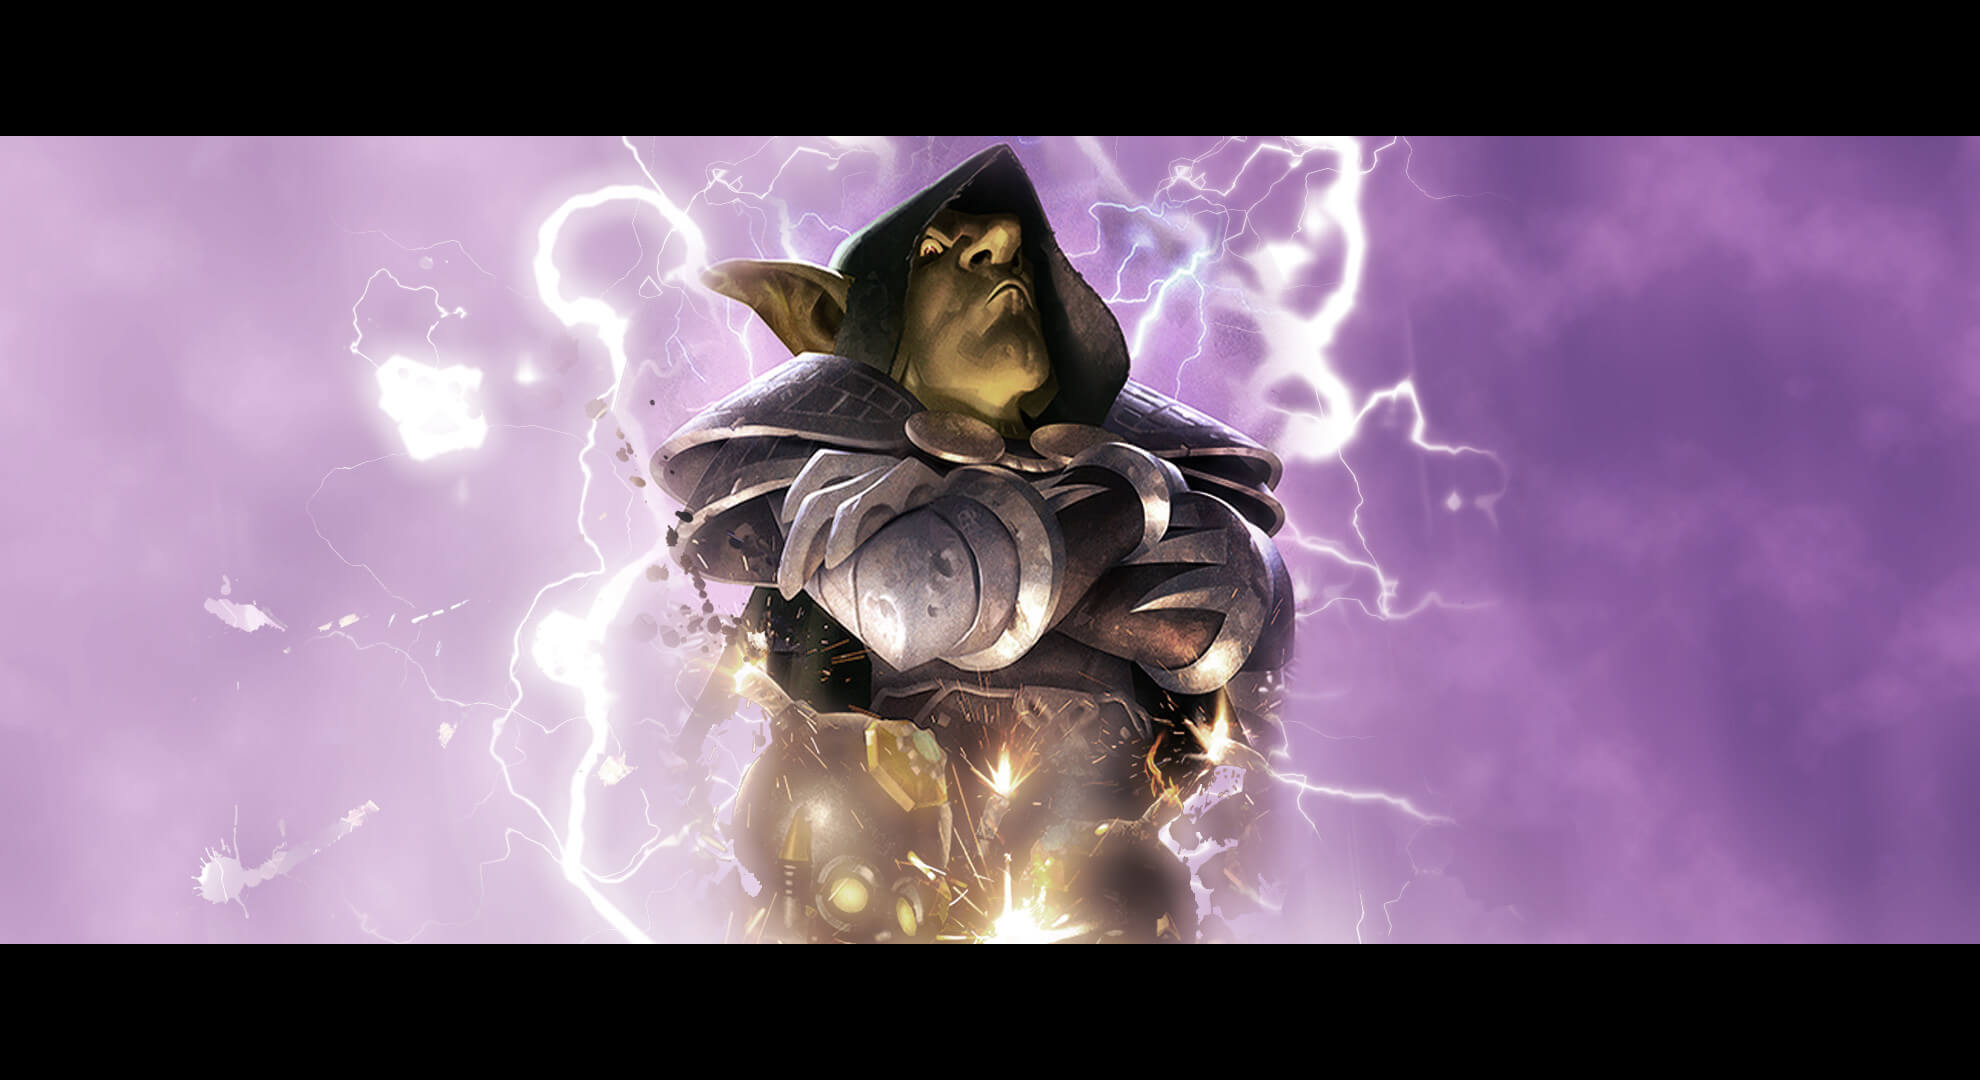 Hearthstone Dr Boom Wallpaper Art